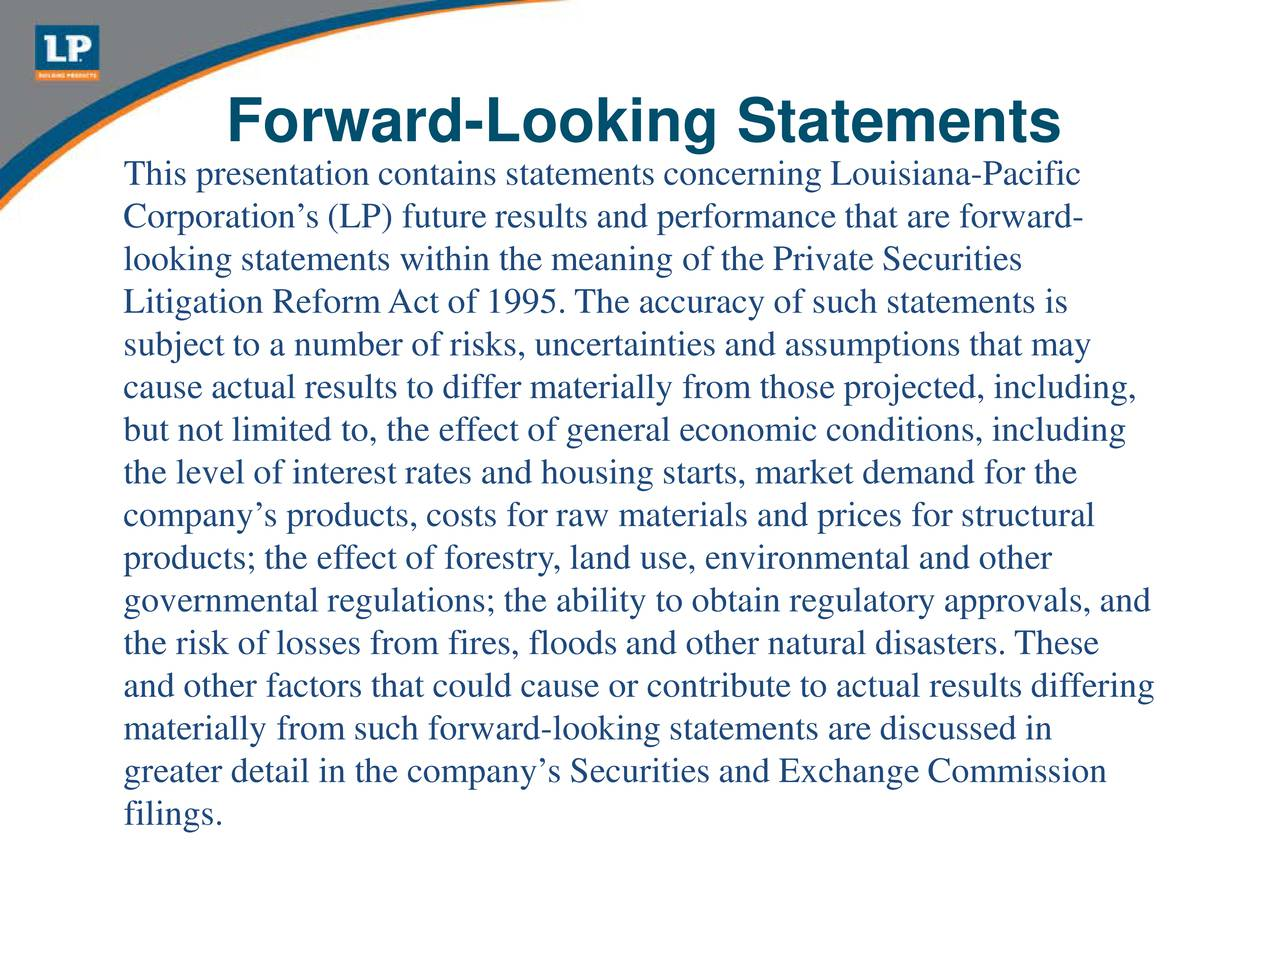 This presentation contains statements concerning Louisiana-Pacific Corporations (LP) future results and performance that are forward- looking statements within the meaning of the Private Securities Litigation ReformAct of 1995. The accuracy of such statements is subject to a number of risks, uncertainties and assumptions that may cause actual results to differ materially from those projected, including, but not limited to, the effect of general economic conditions, including the level of interest rates and housing starts, market demand for the companys products, costs for raw materials and prices for structural products; the effect of forestry, land use, environmental and other governmental regulations; the ability to obtain regulatory approvals, and the risk of losses from fires, floods and other natural disasters. These and other factors that could cause or contribute to actual results differing materially from such forward-looking statements are discussed in greater detail in the companys Securities and Exchange Commission filings.